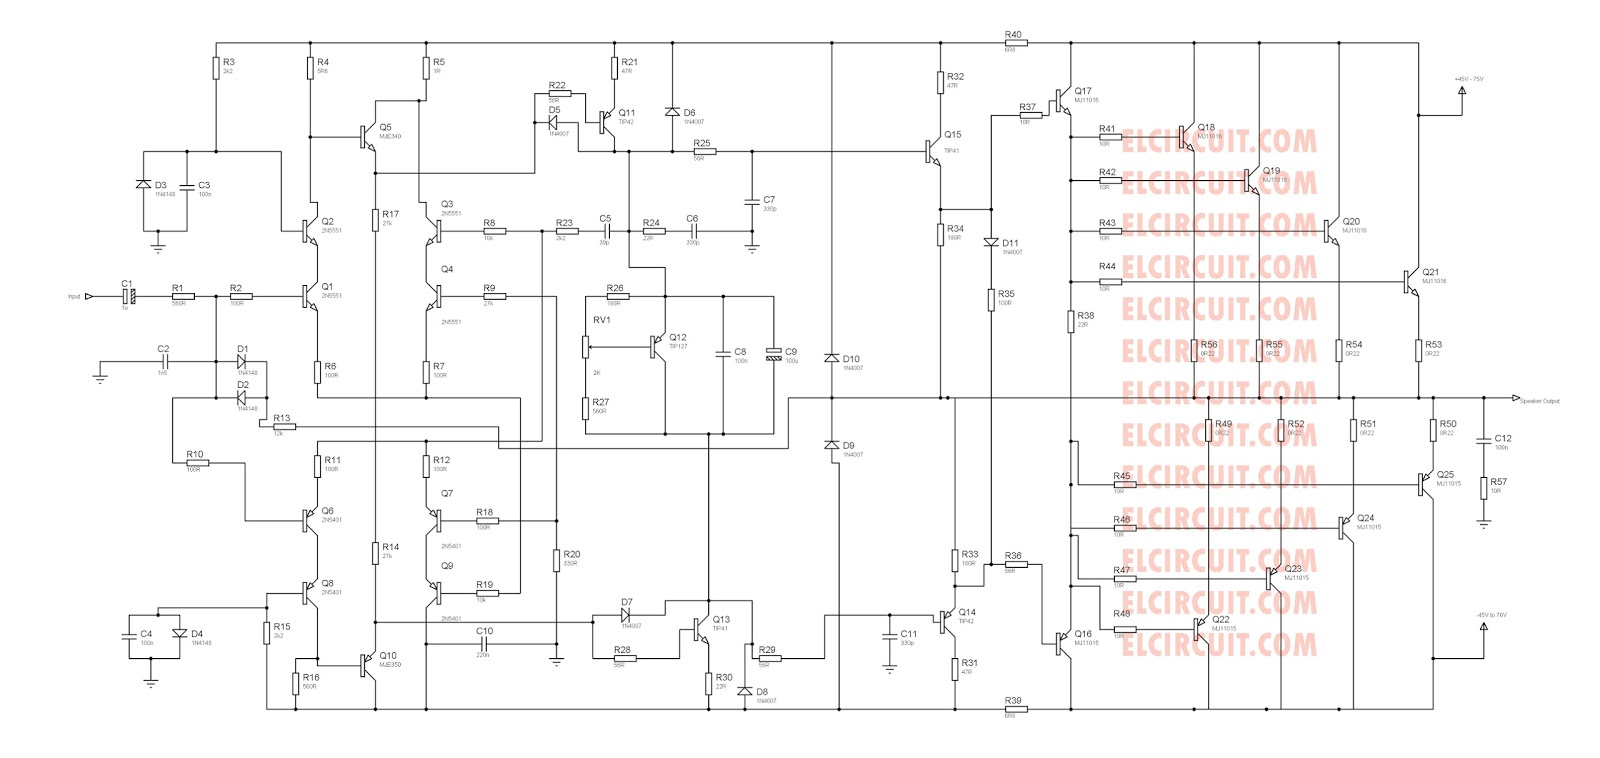 2800w High Power Amplifier Circuit Updated Electronic 12 Volt Supply Likewise Audio Lifier In Pa Schematic Diagram Edit Your Own Ideas With Proteus Software